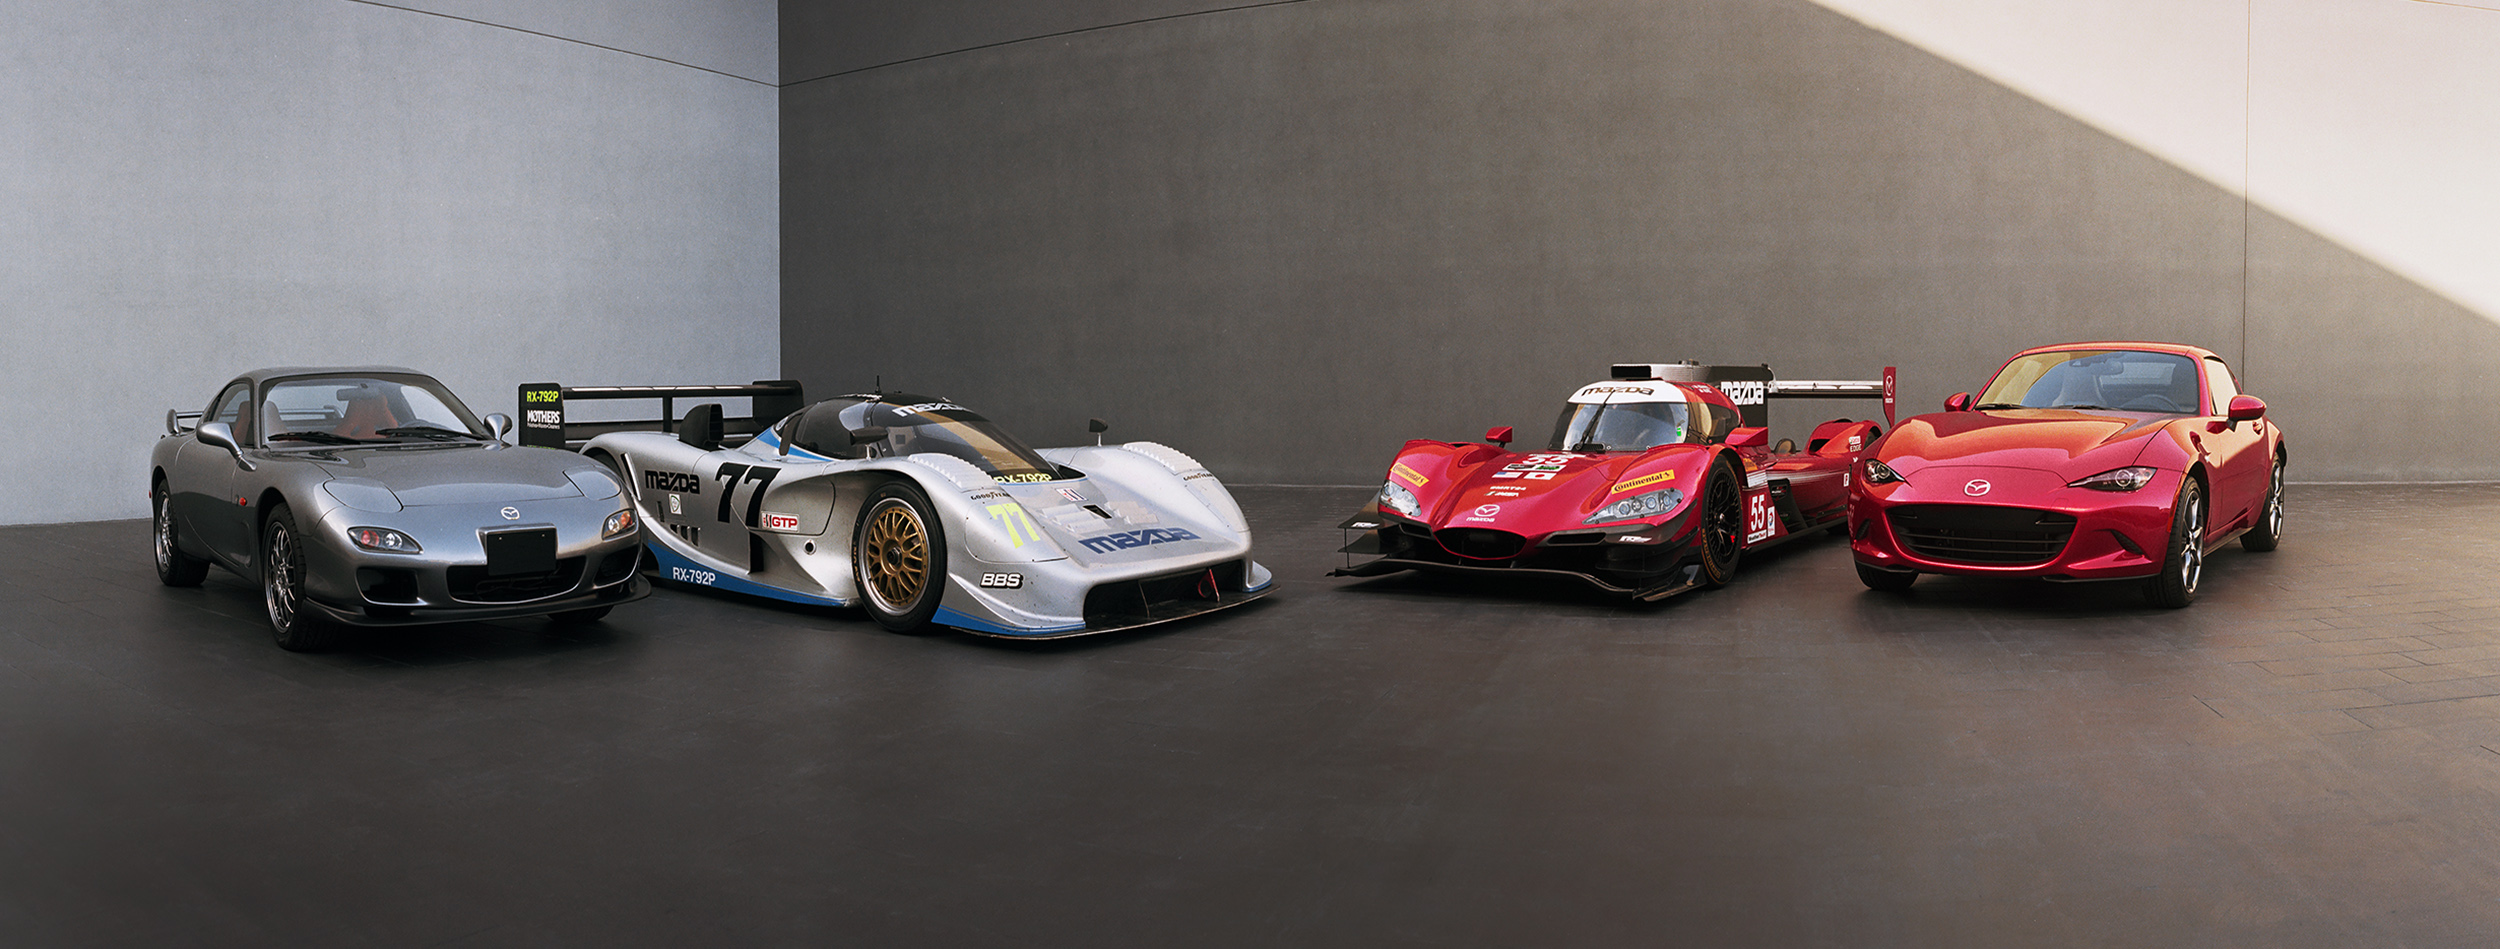 Two racecars, two road cars